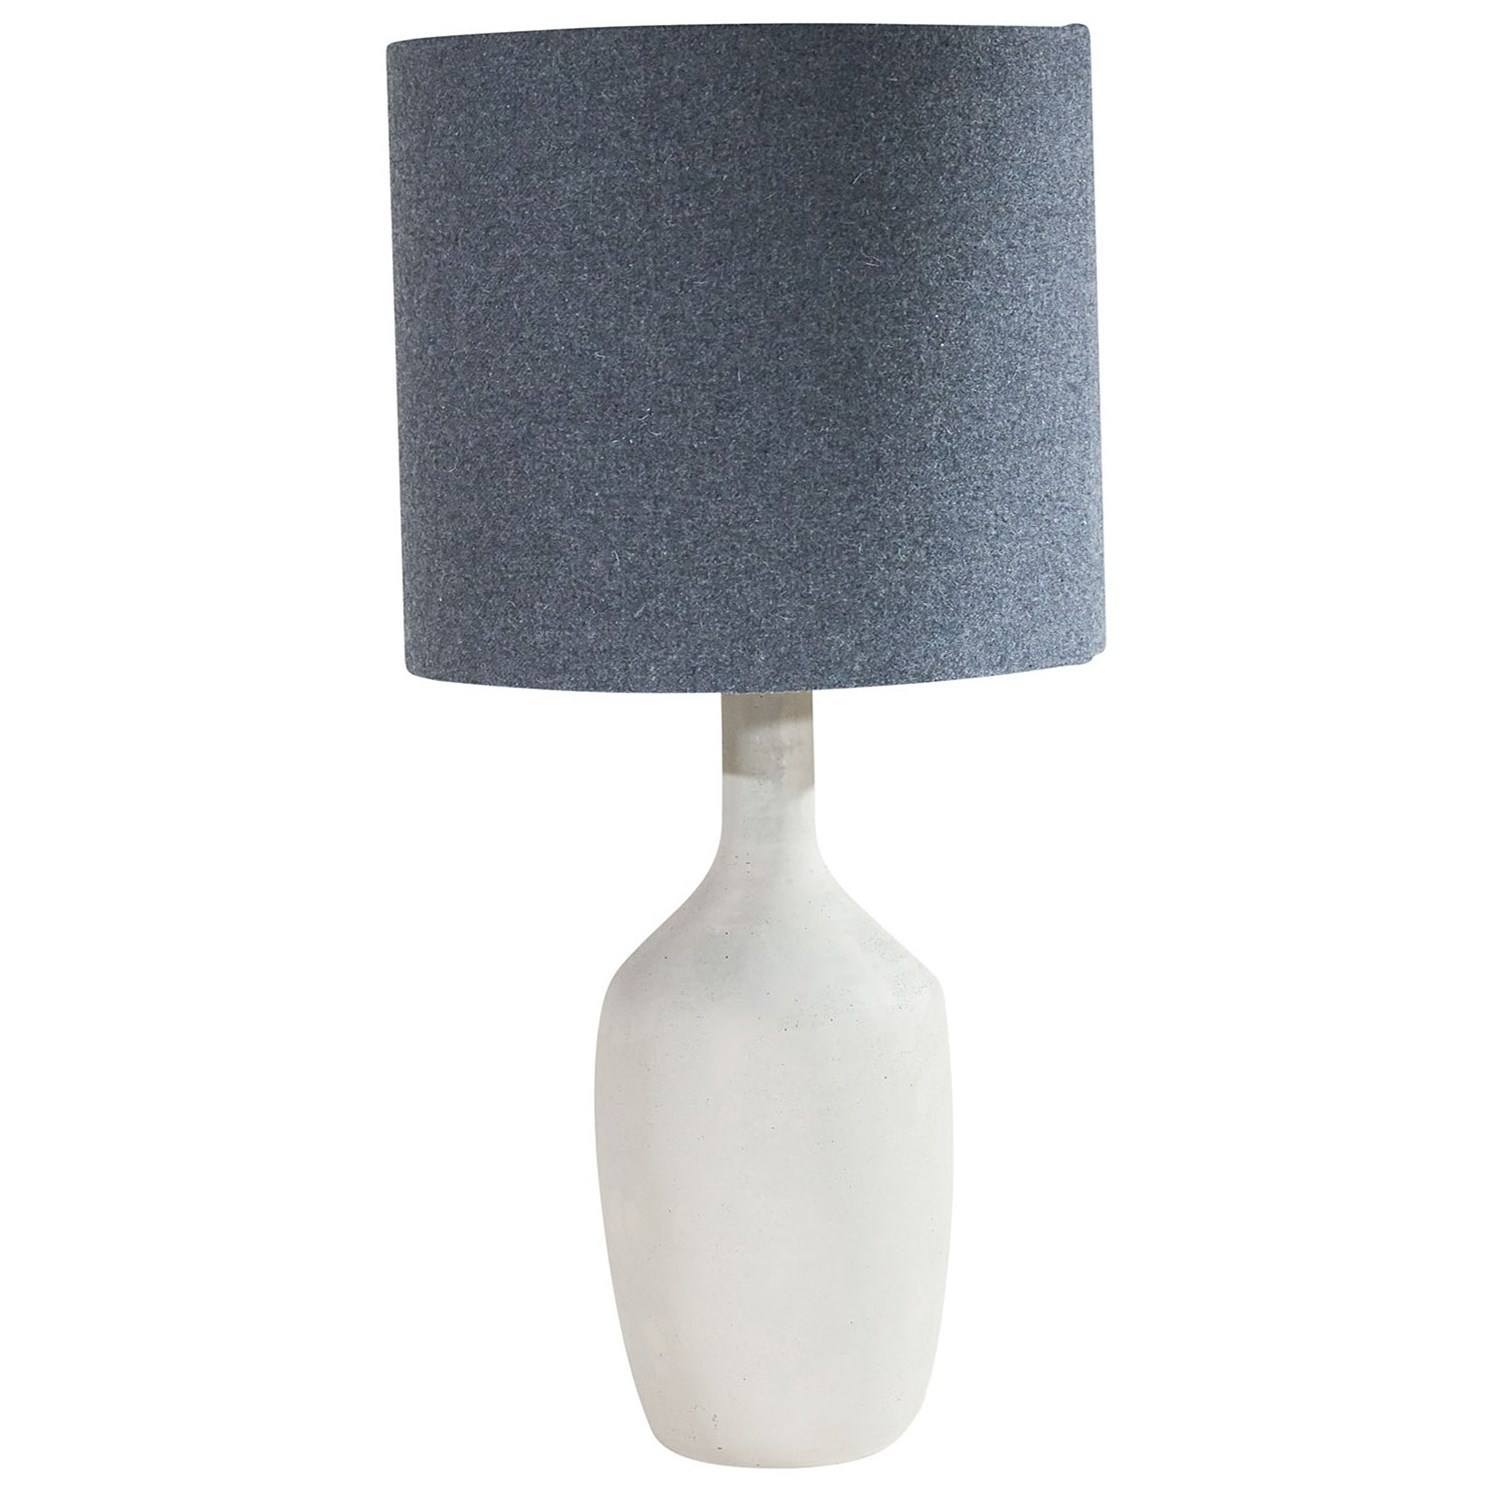 Magnolia Home By Joanna Gaines Accessories Cement Asher Table Lamp